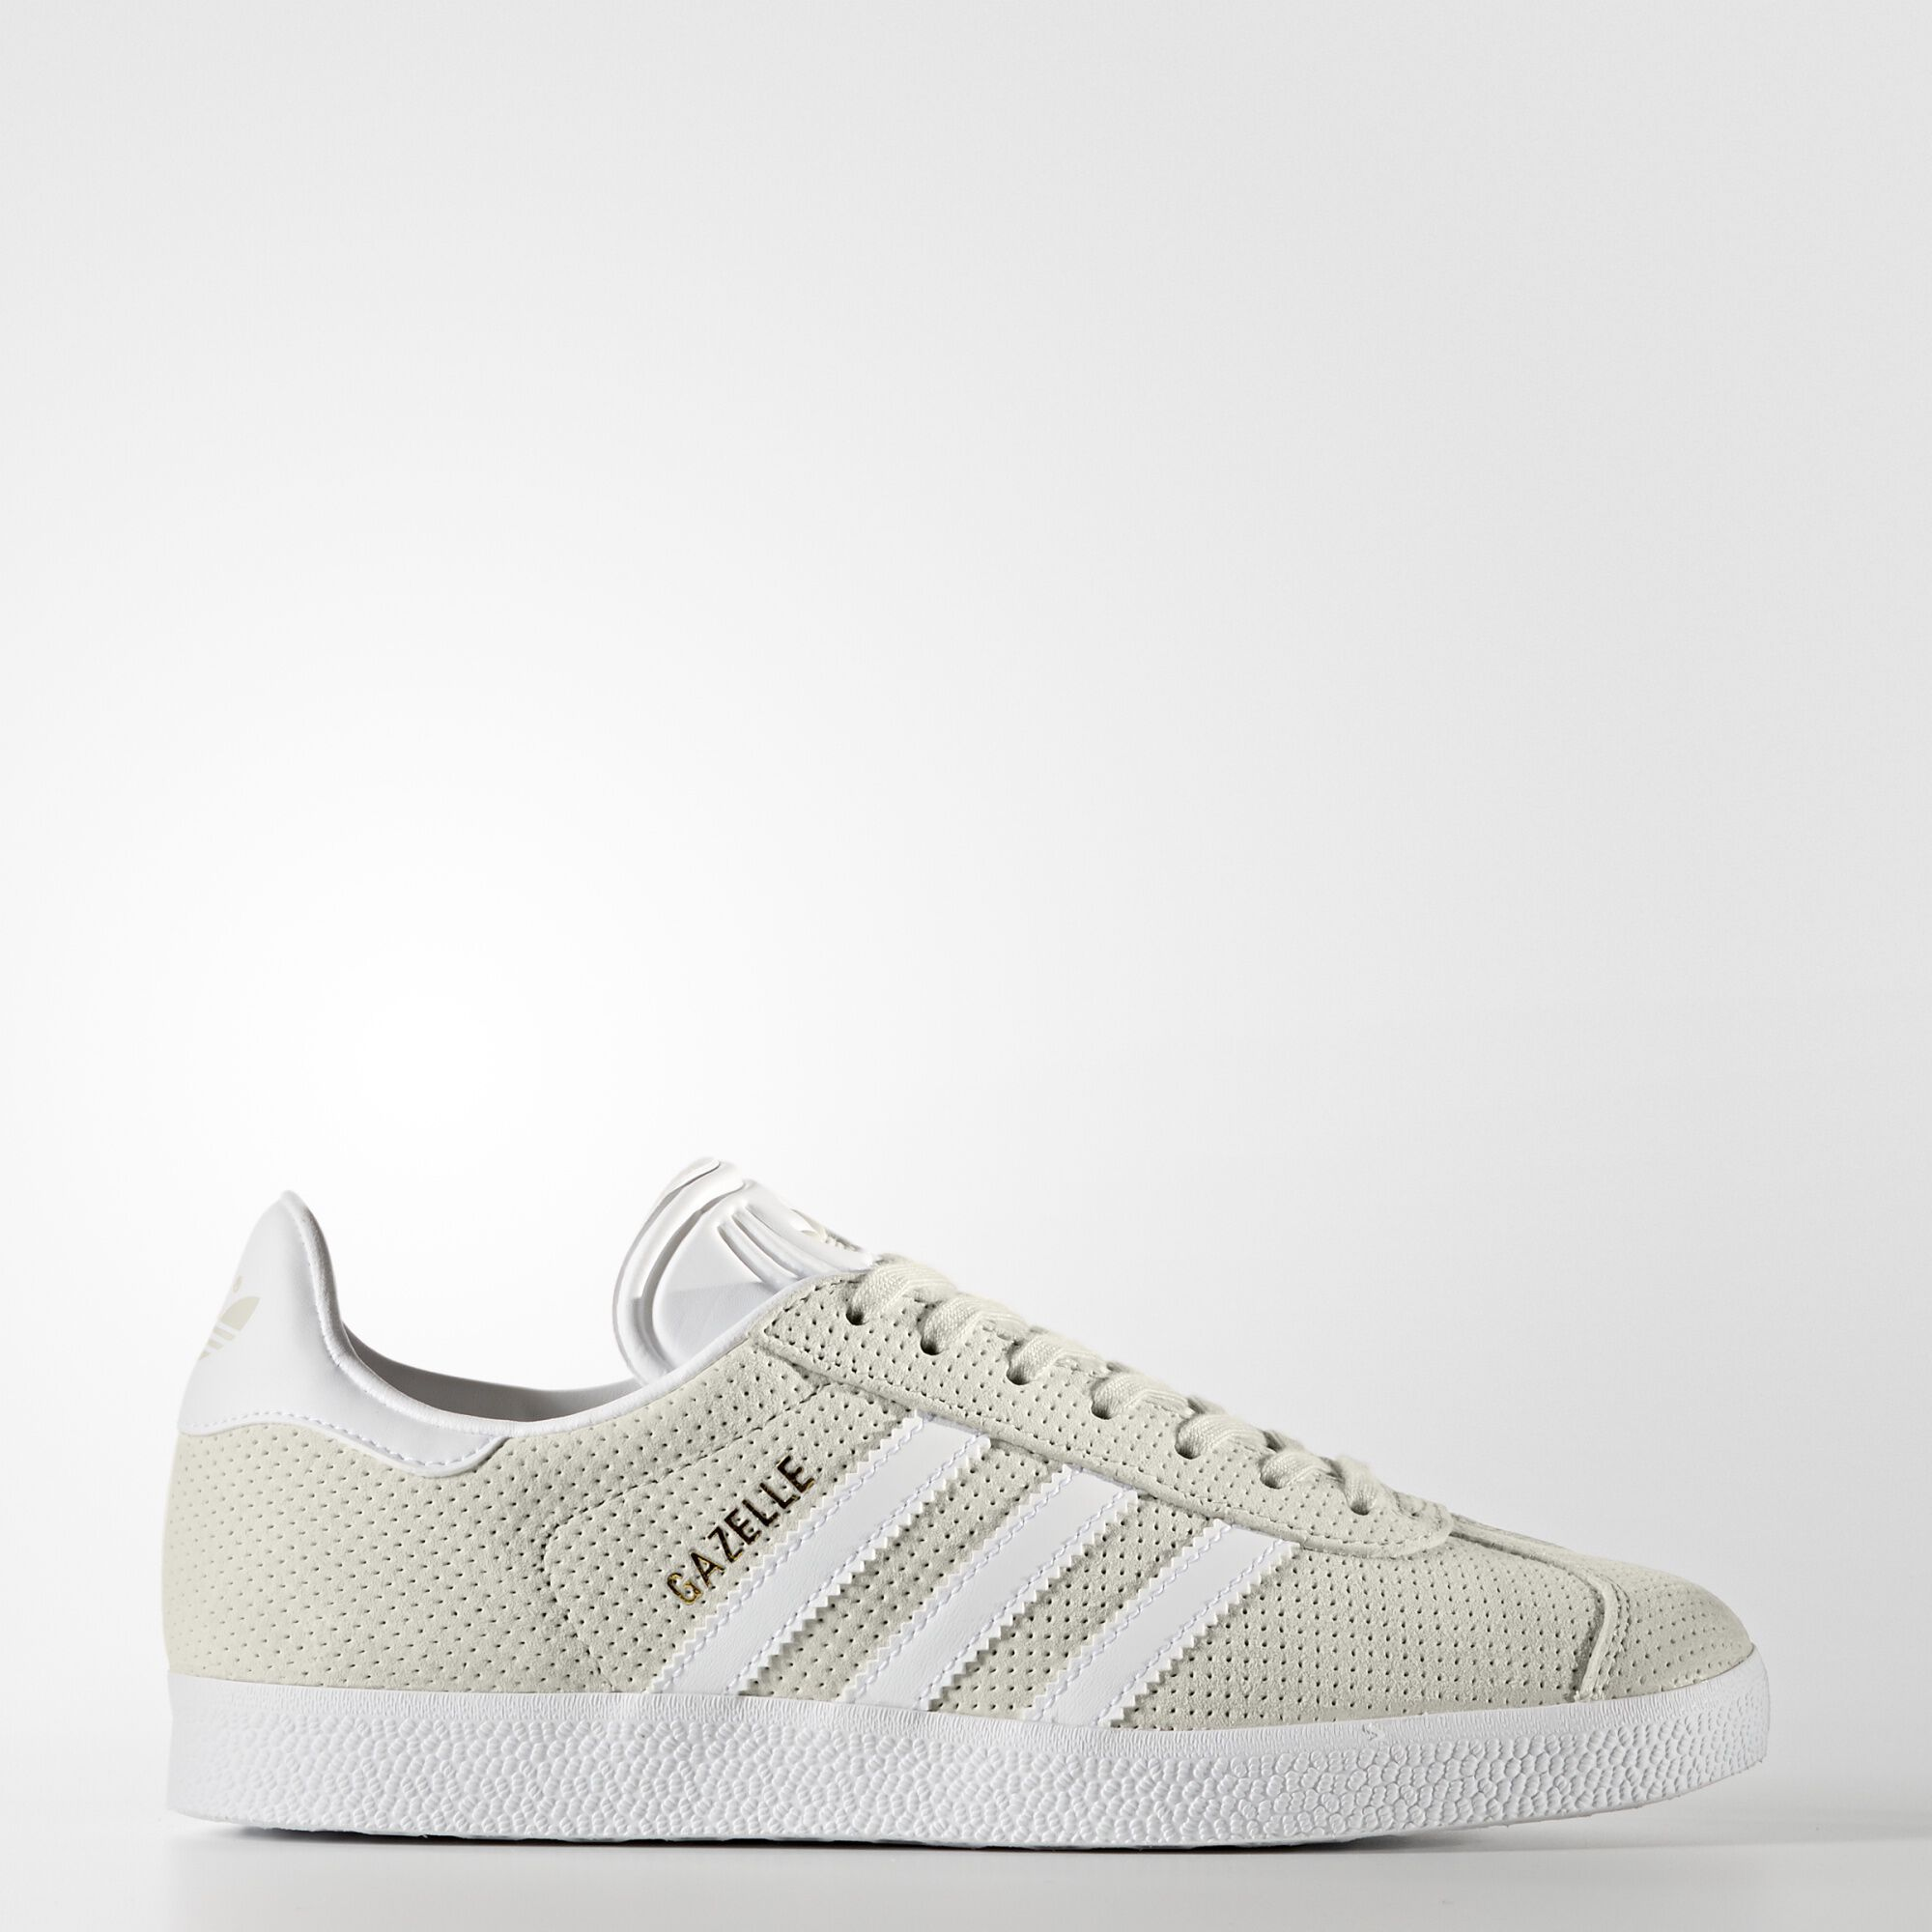 4a1c5a9cccb7b6 adidas NEO Label Fall Winter 2014  adidas - Gazelle Shoes Clear Brown    Running White   Metallic Gold BY9360